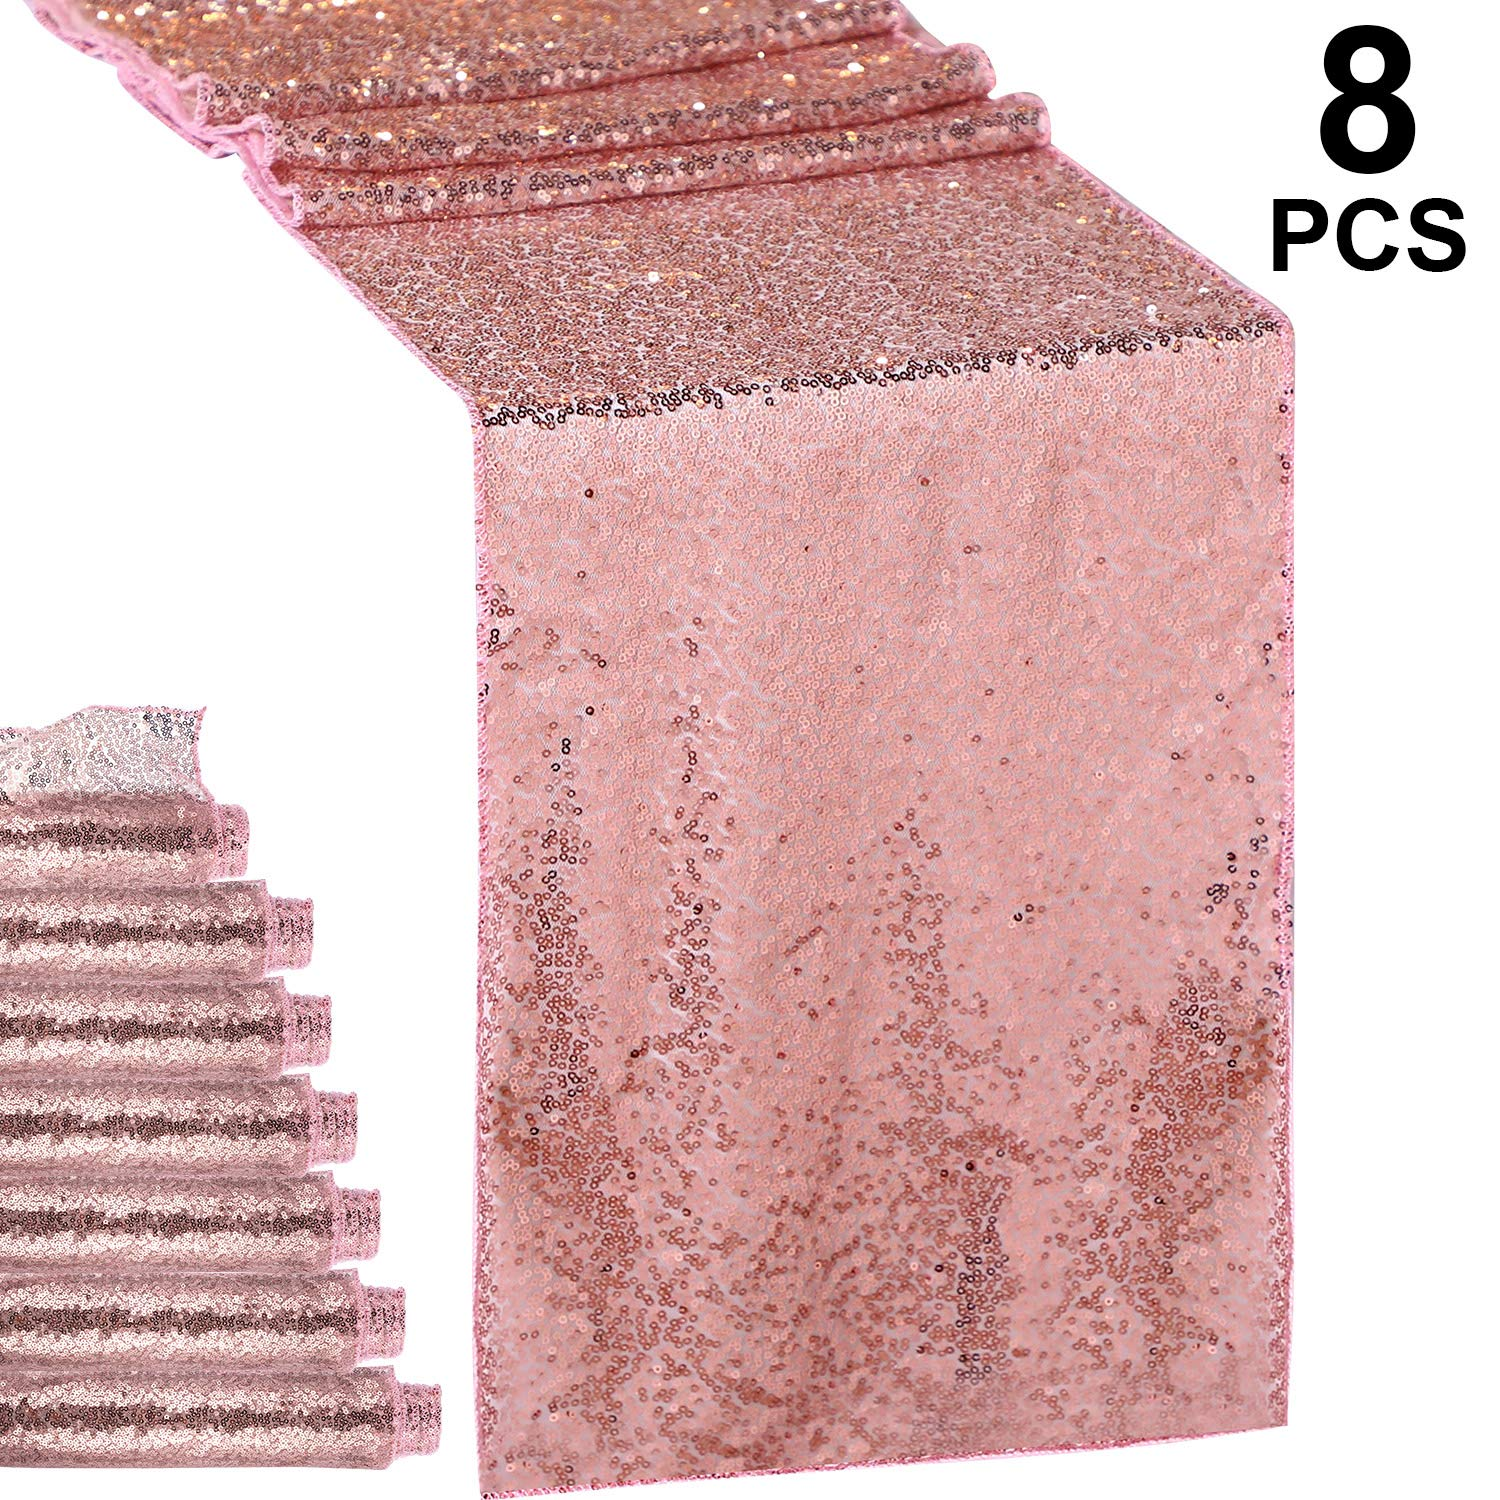 Hestya 8 Pieces Sequin Table Runner Glitter Sparkly 12 by 108 Inch for Wedding Engagement Birthday Summer Theme Party Bridal Baby Shower Dresser Decorations (Rose Gold, 8 Pieces)